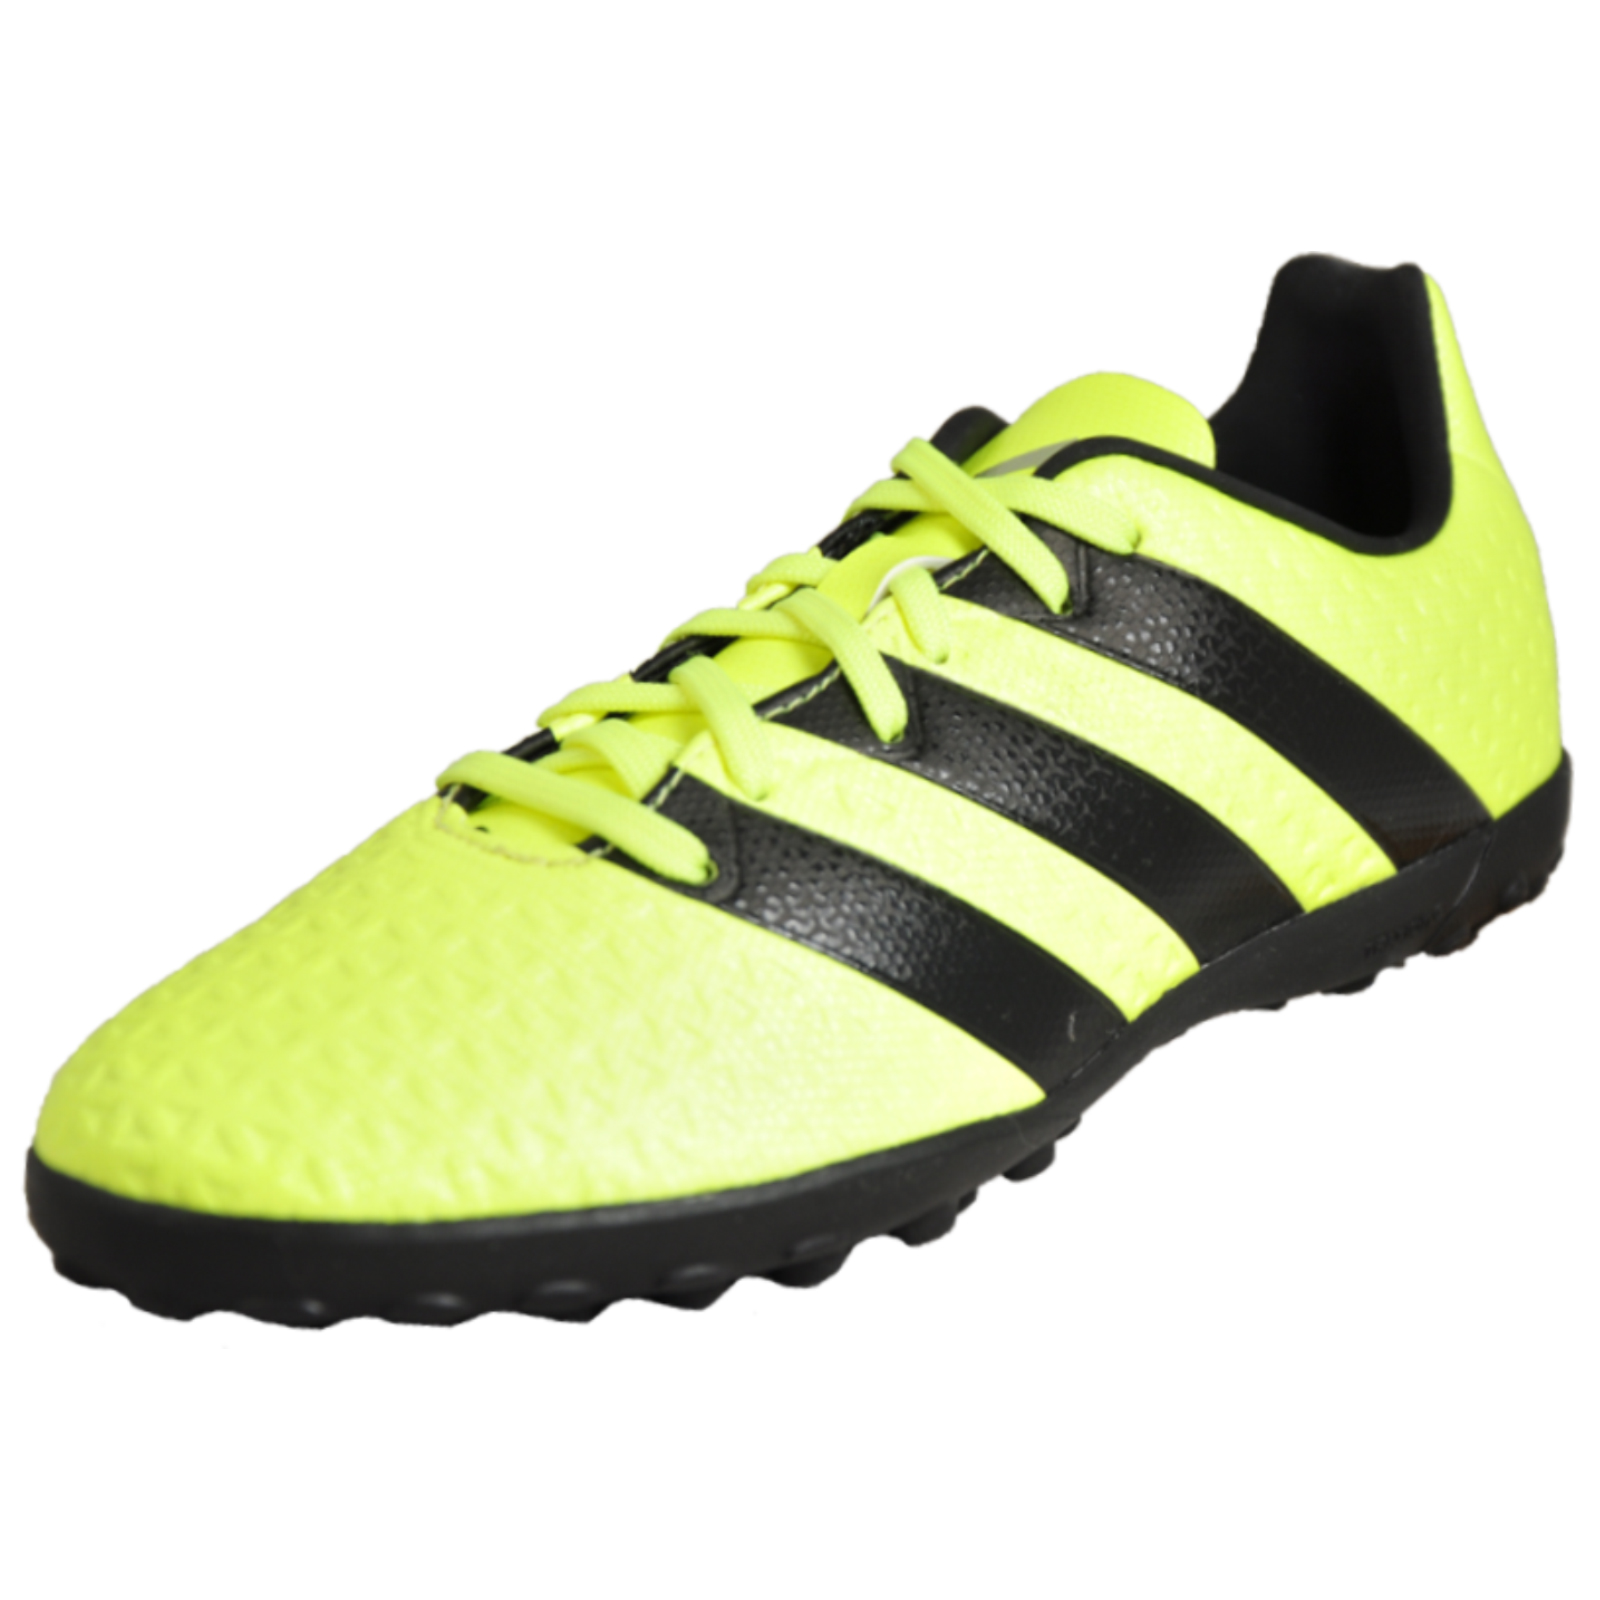 Details about Adidas Ace 16.4 TF Junior Kids Boys Turf Football Trainers  Yellow 7bd2d251e3e8c